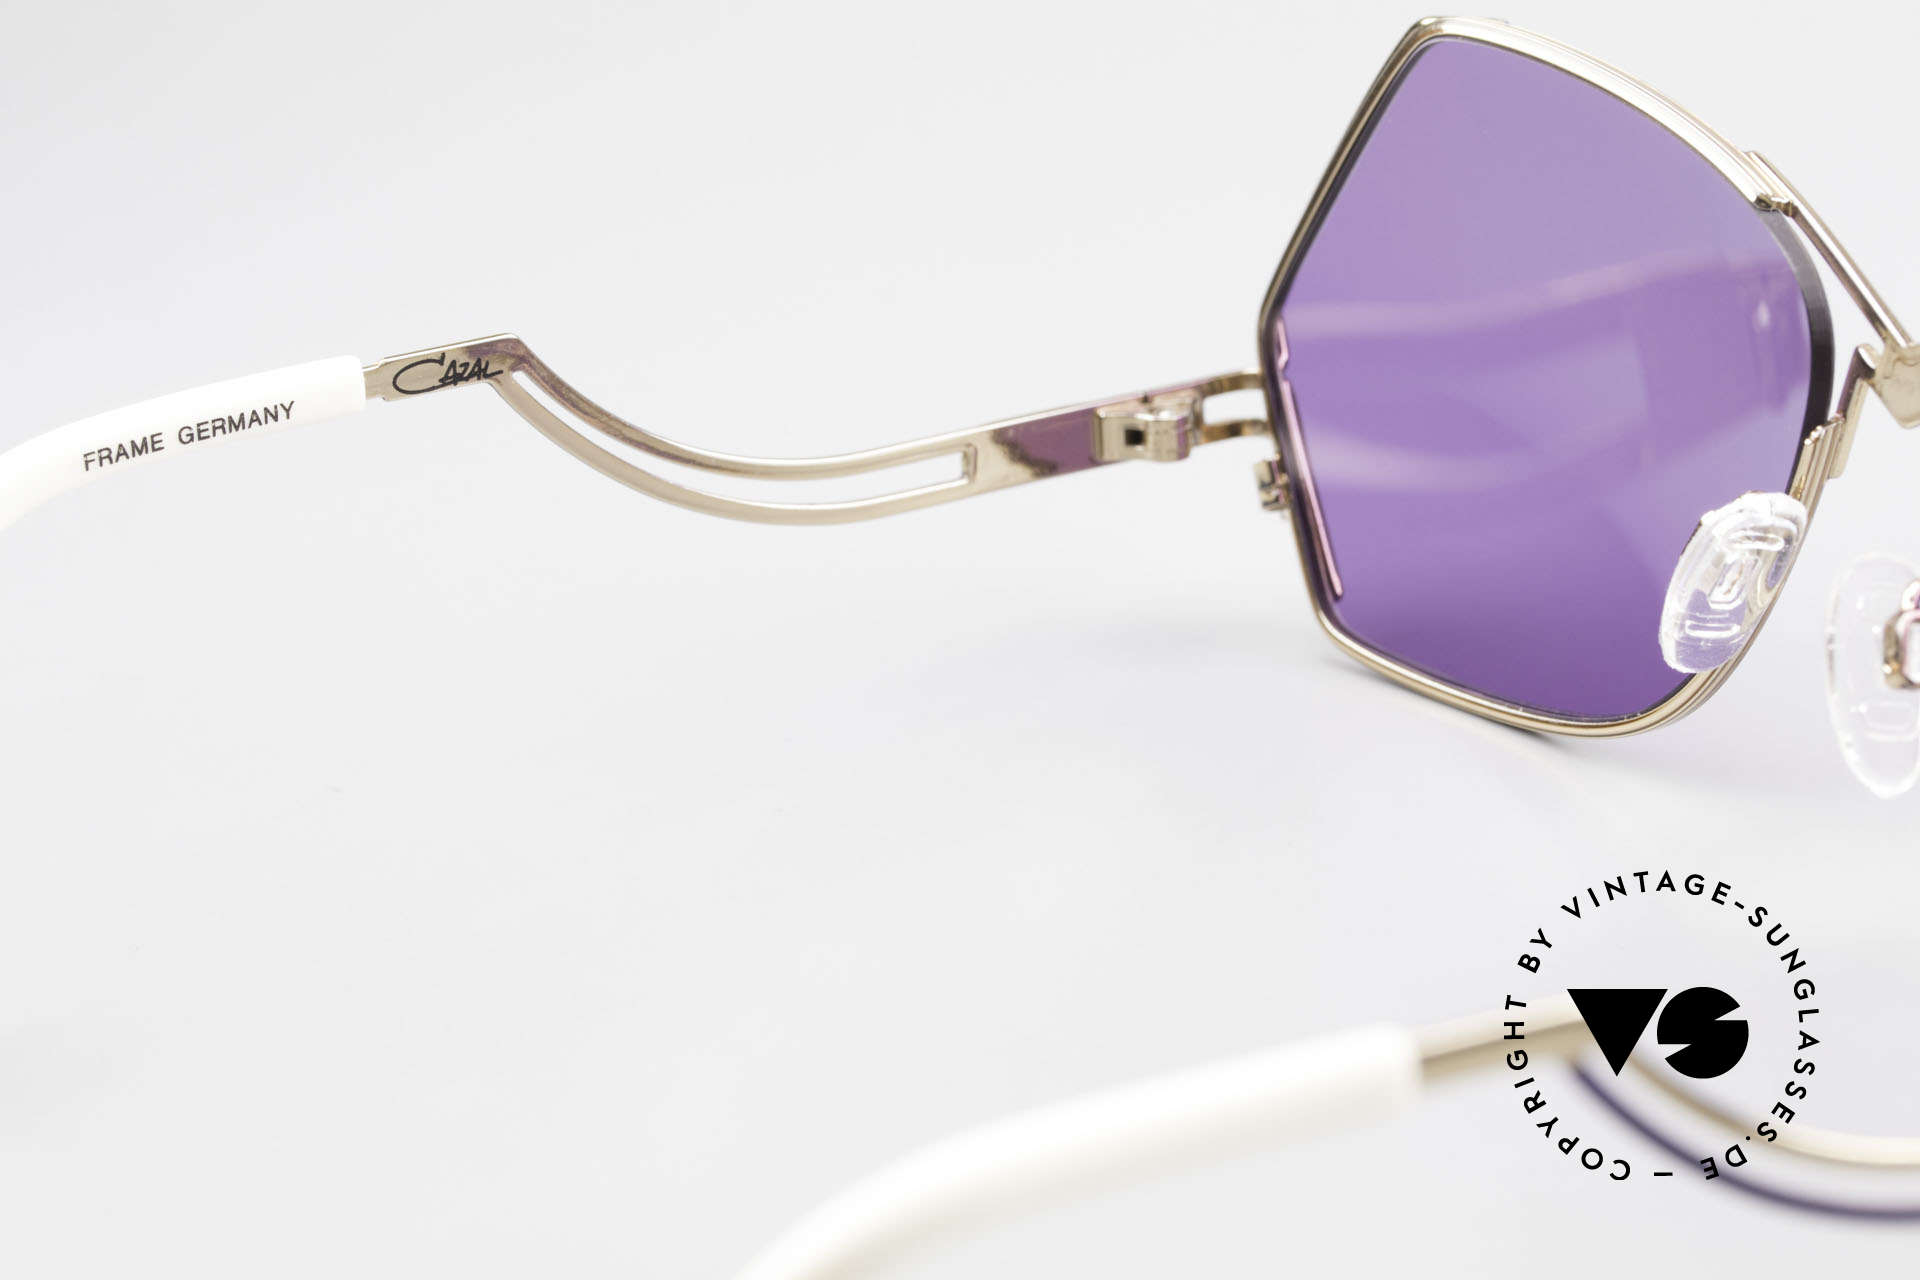 Cazal 226 Purple Vintage Ladies Shades, the sun lenses can be replaced with optical (sun) lenses, Made for Women